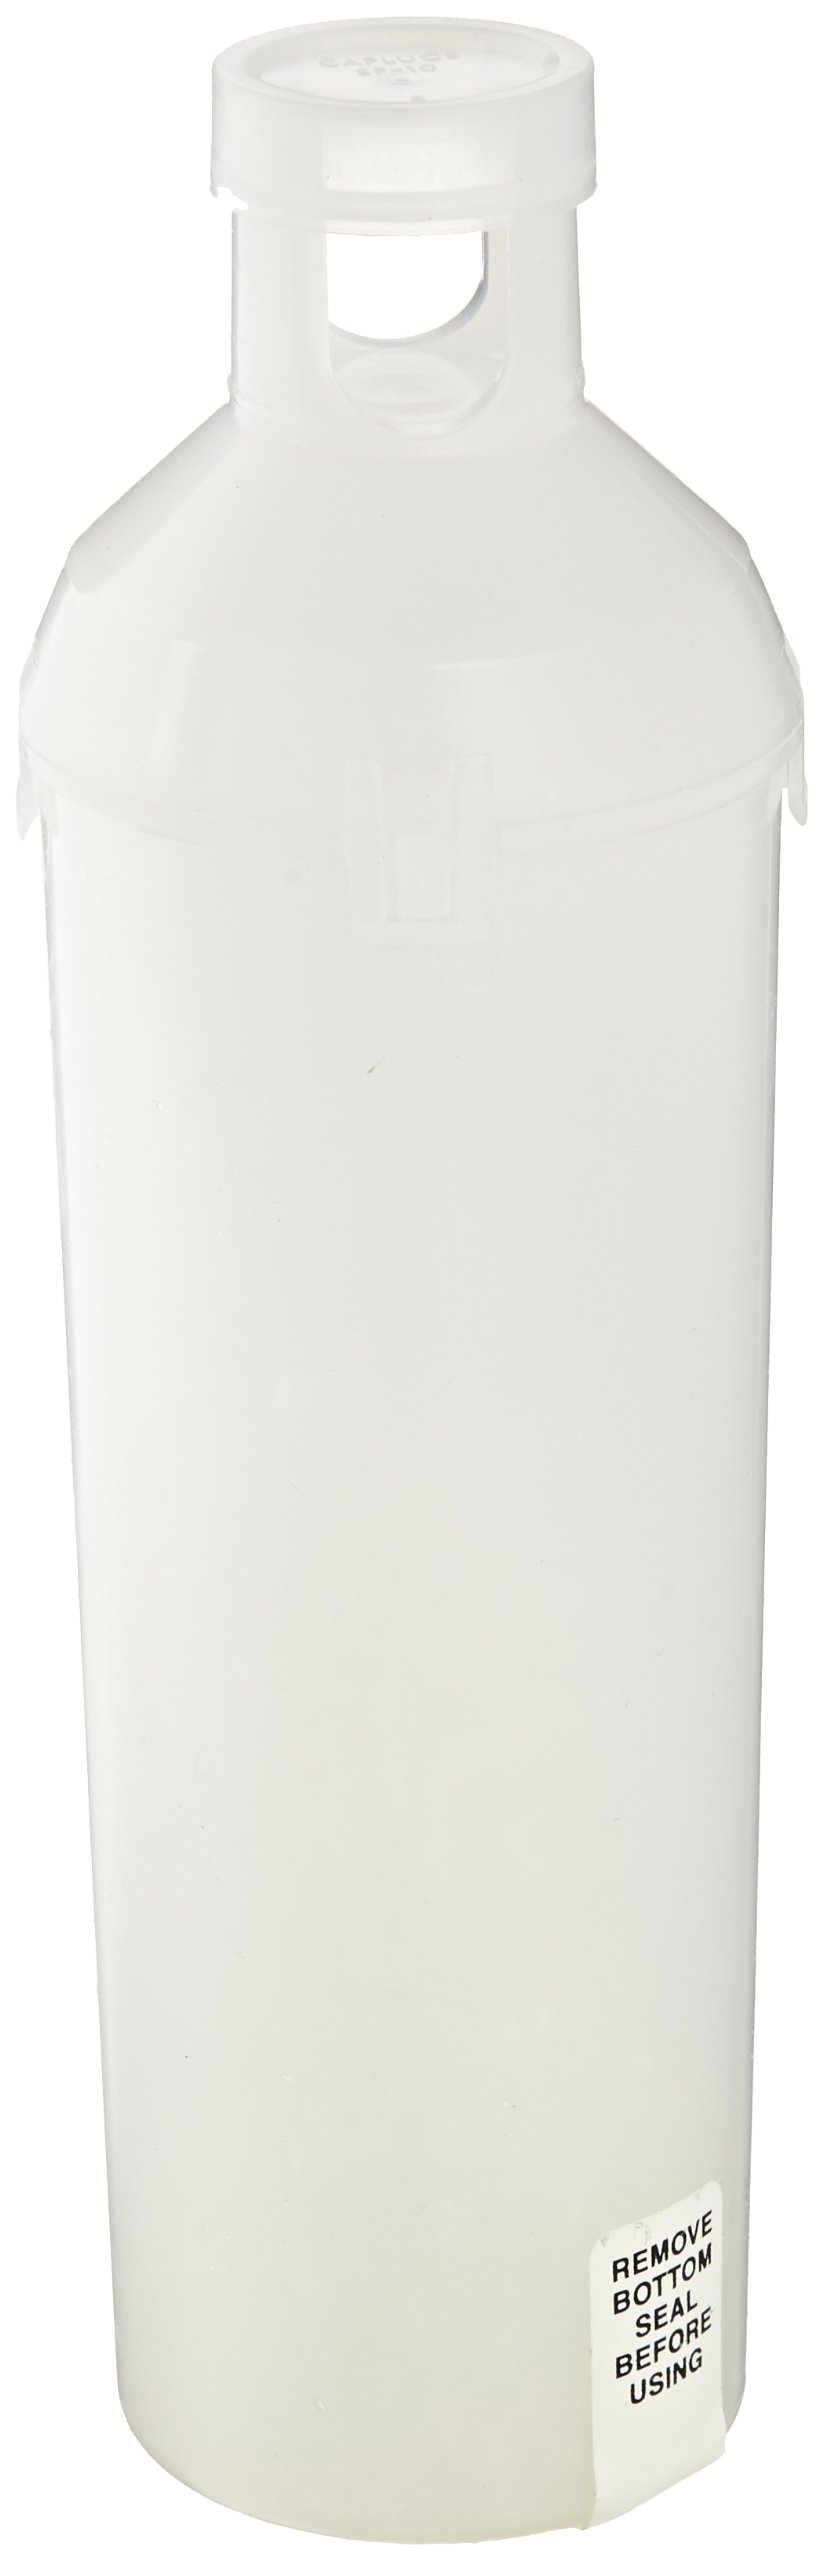 Pentek PCC-1 Phosphate Filter Cartridge, 9-5/8'' x 2-7/8'' by Pentek